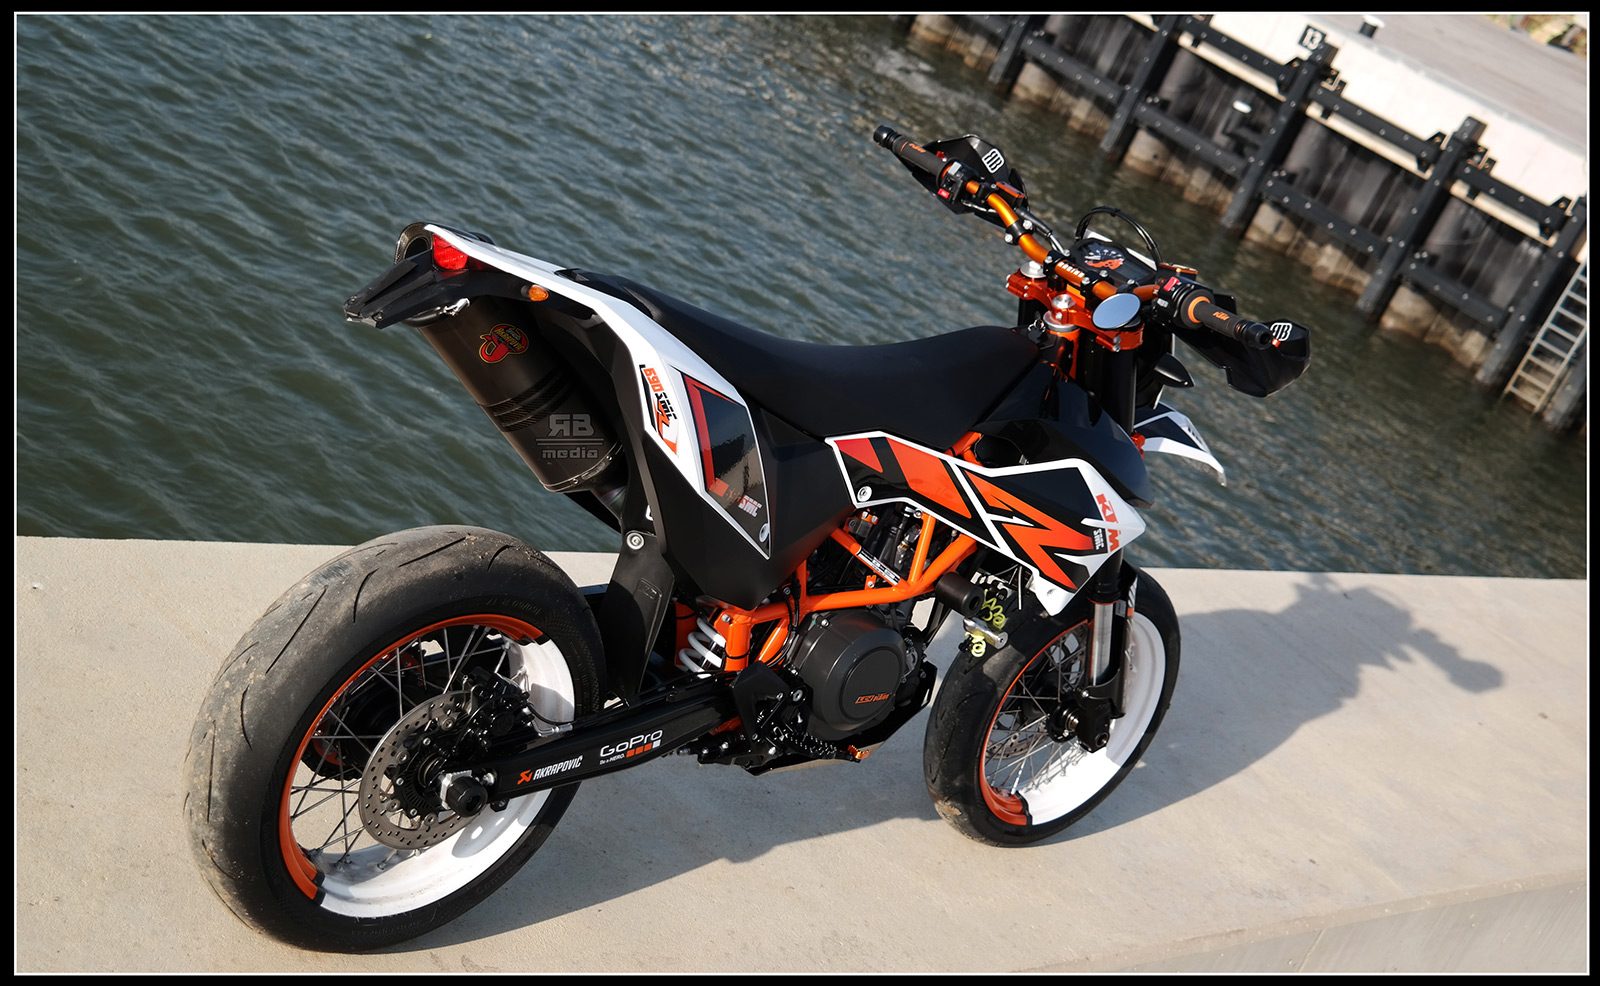 ktm 690 smc r custom rb media derestricted. Black Bedroom Furniture Sets. Home Design Ideas